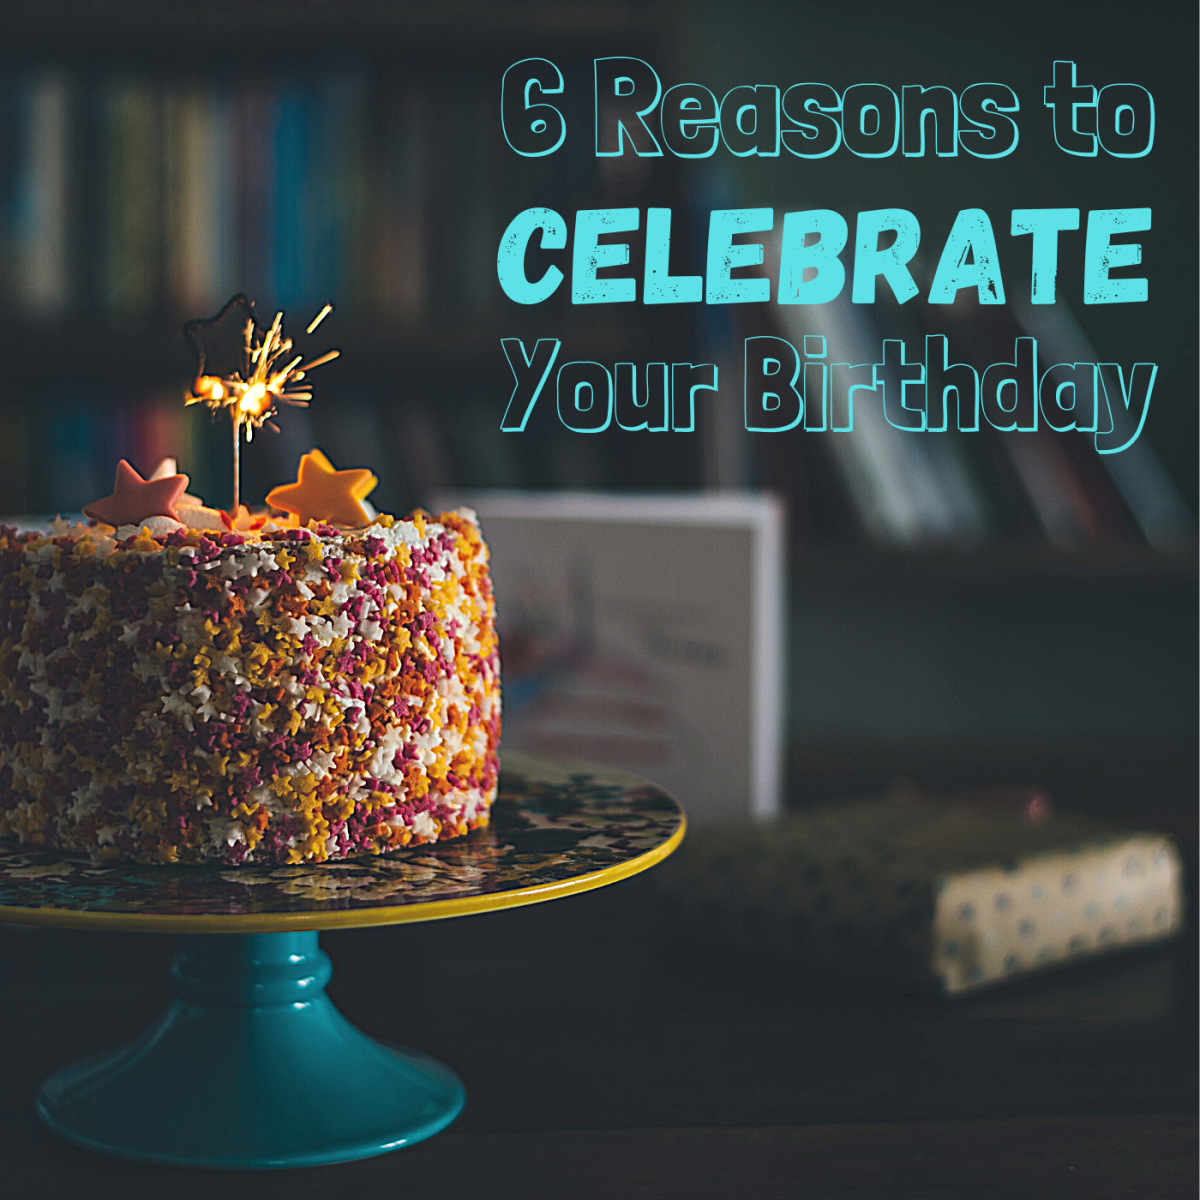 Why Birthdays Should Be Celebrated: A Christian Perspective